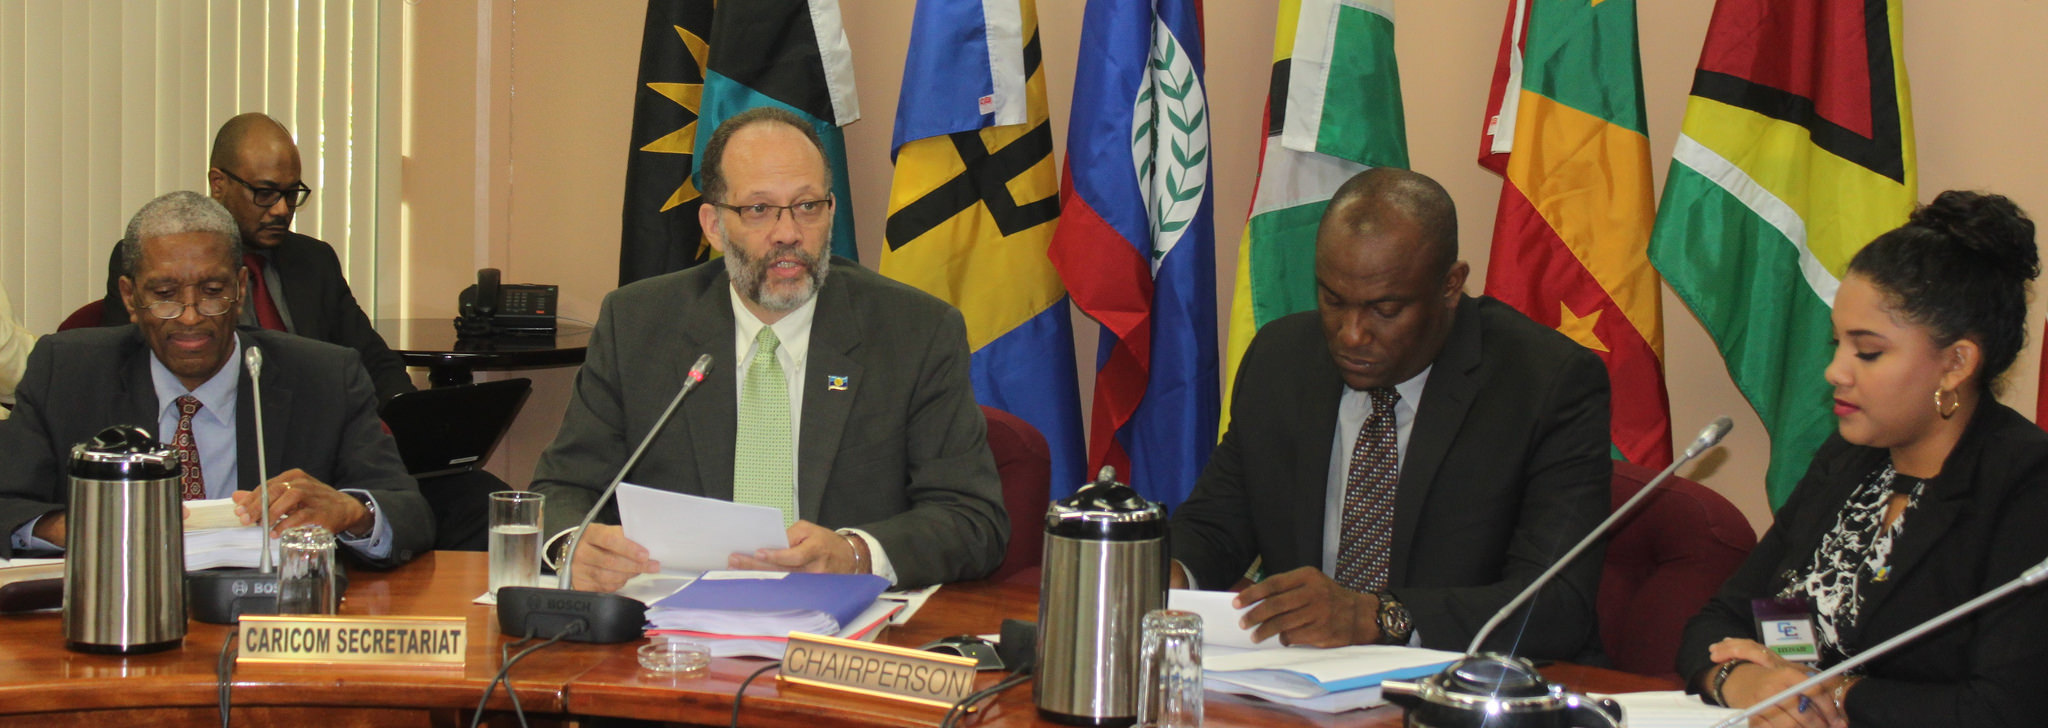 Secretary-General of the Caribbean Community (CARICOM) Ambassador Irwin LaRocque    At The   Twenty-Ninth Meeting of the Council for Human and Social Development (COHSOD)  (Youth and Culture)